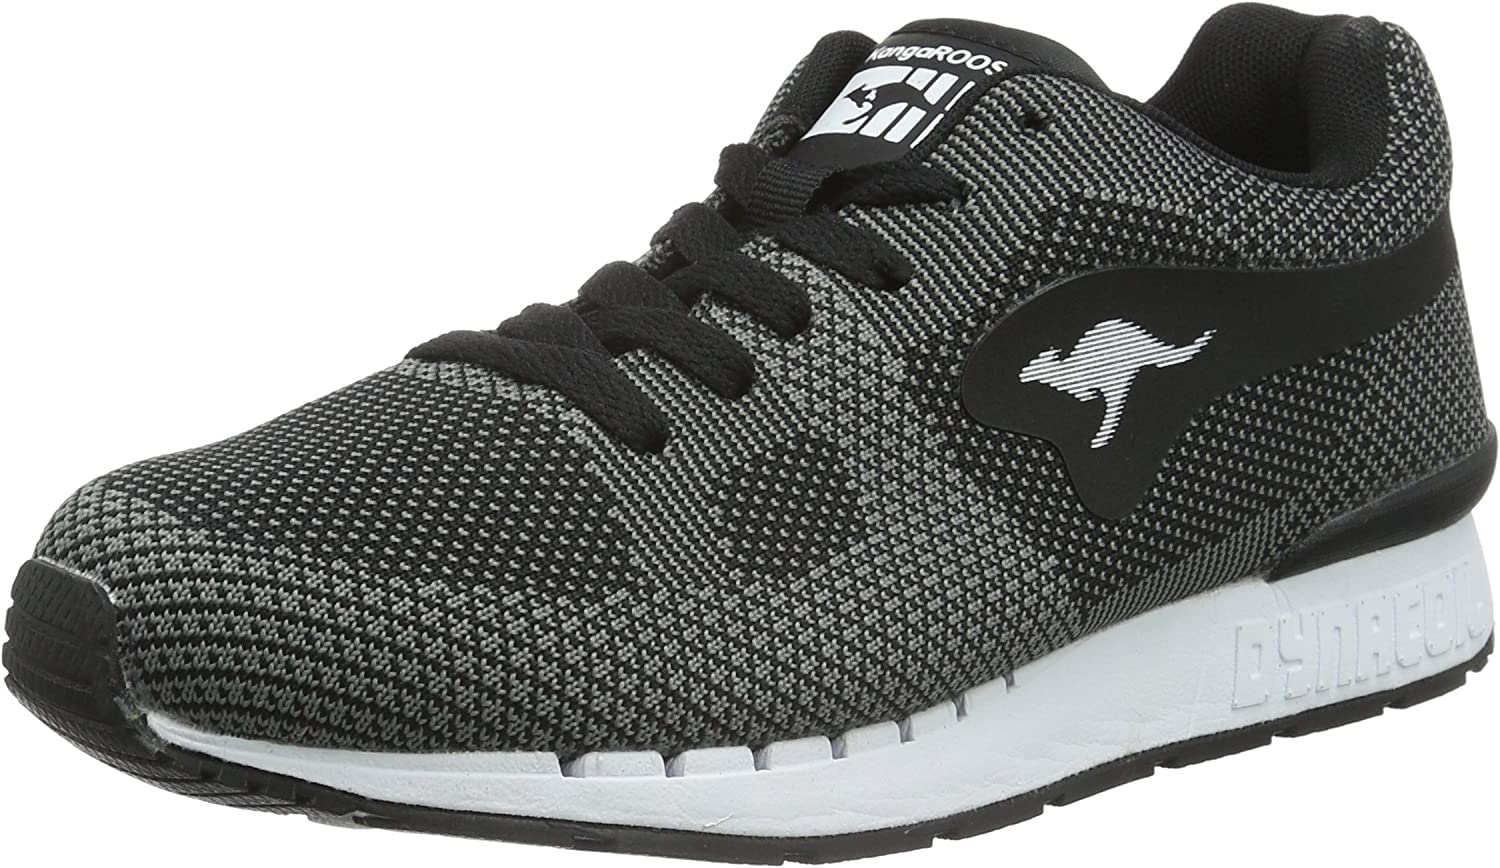 KangaROOS Coil R1-Woven, Unisex Adults' Low-Top Sneakers